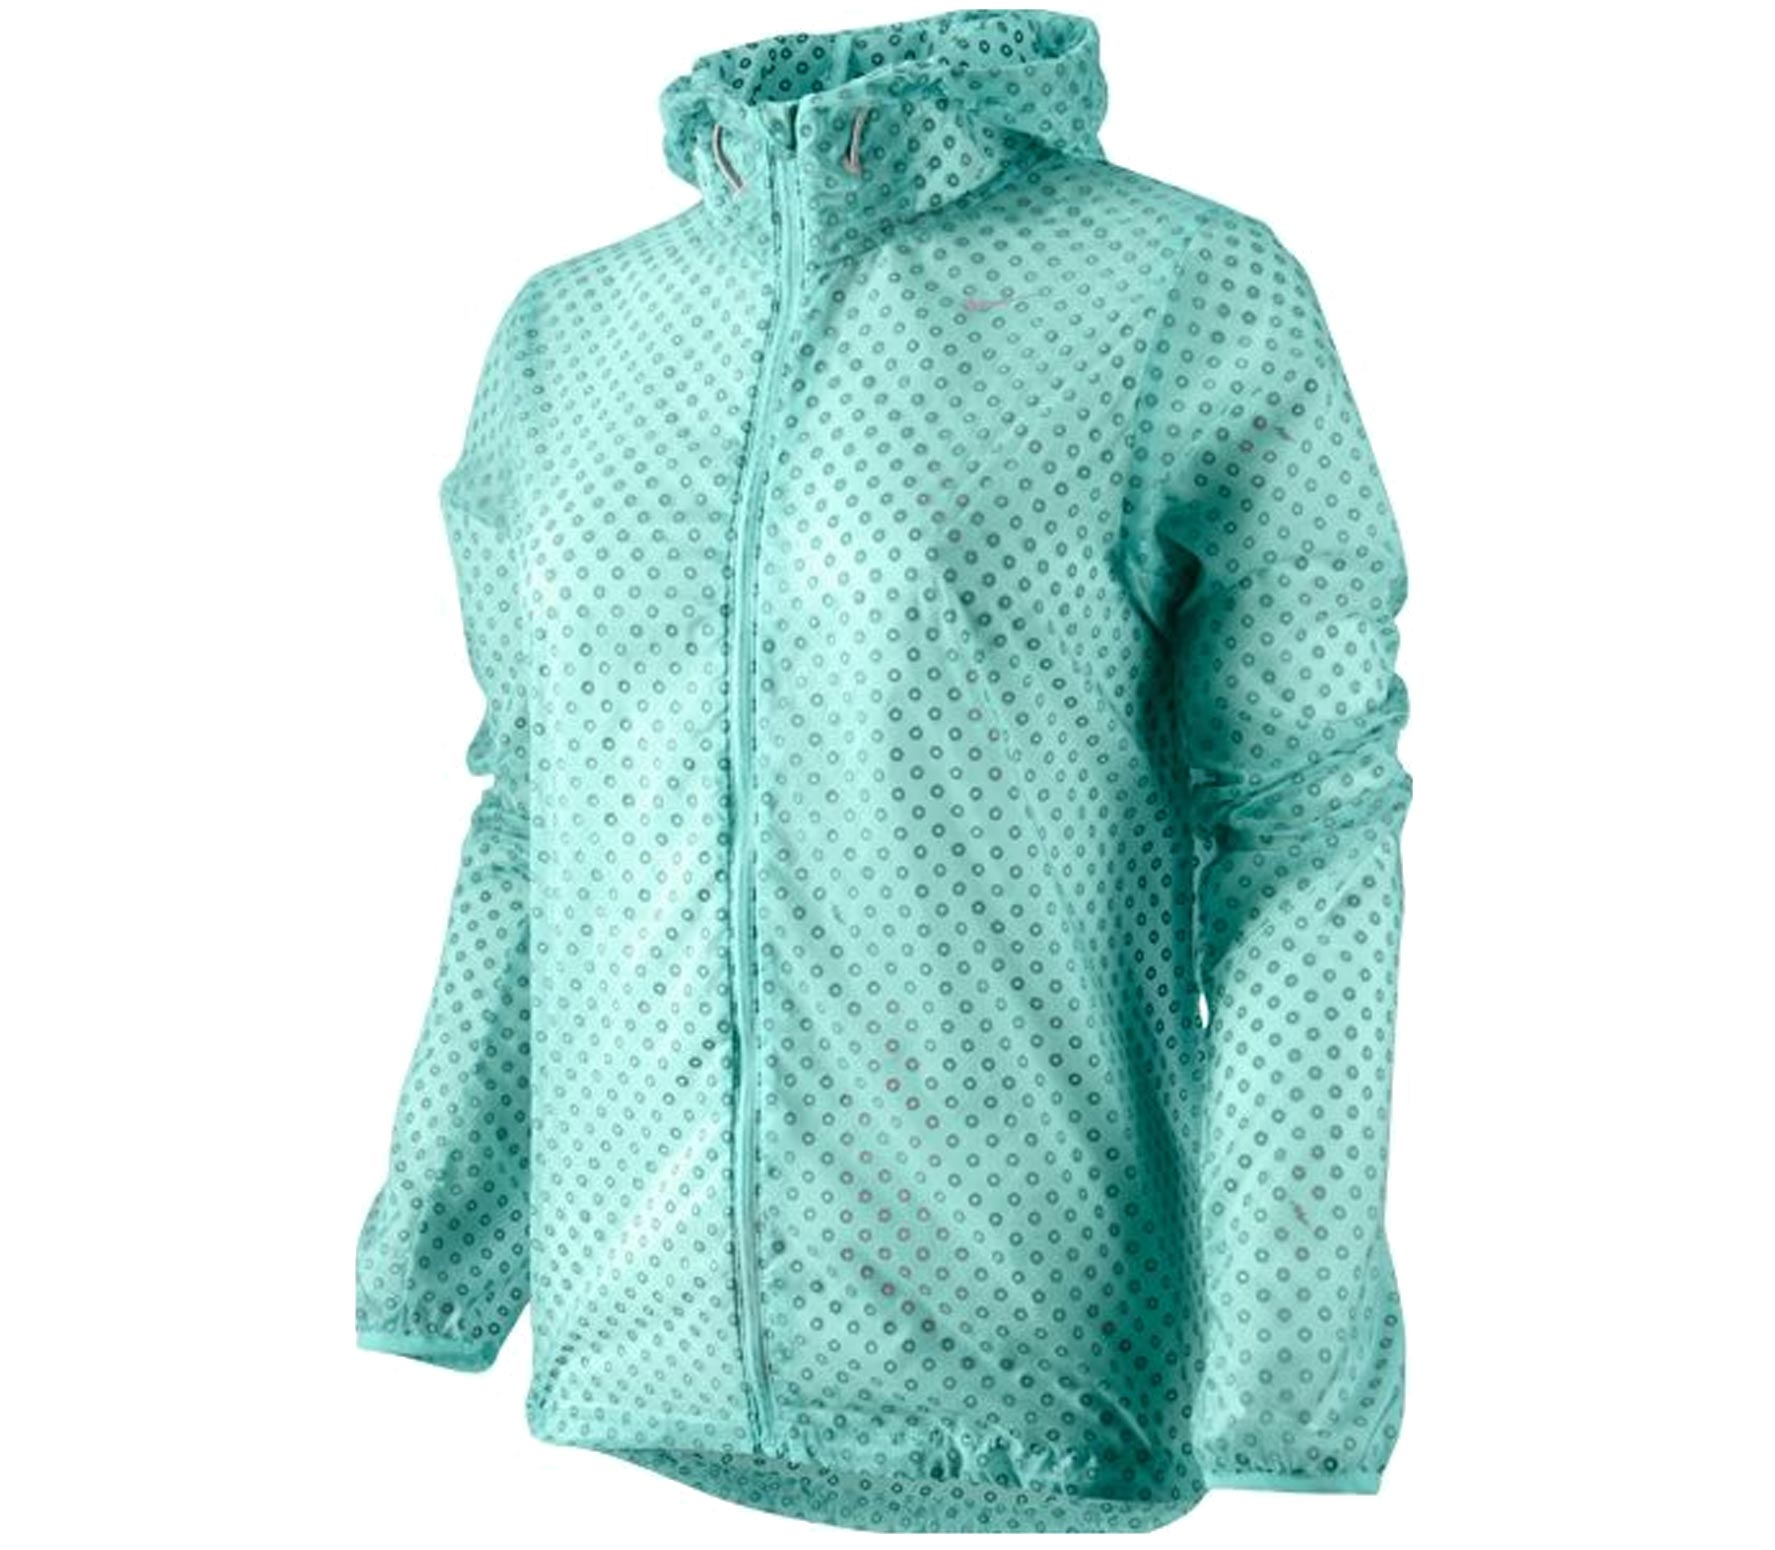 Nike - Women Cyclone Vapor Running Jacket